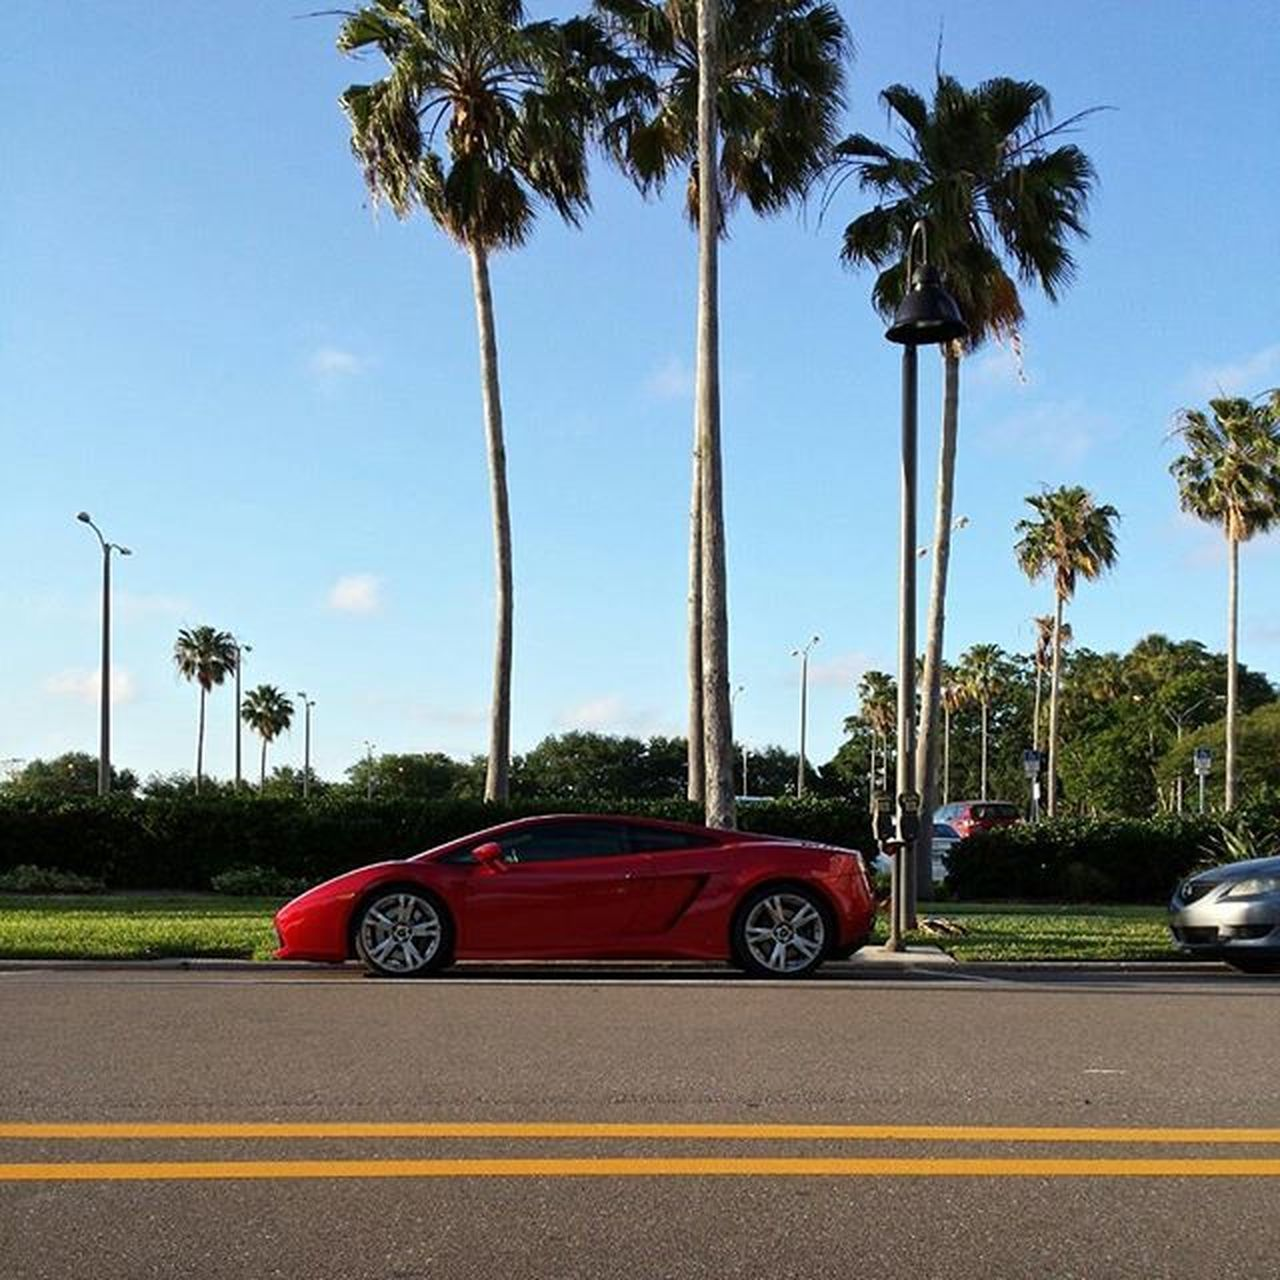 Don't really care for em', but its cool. ------------------------------------EyeRiseUpx Lamborghini Gallardo Red Sun Clearwater Steeze HASHTAG Italian Exotic Photography sKills LookingGood Beautiful Blah